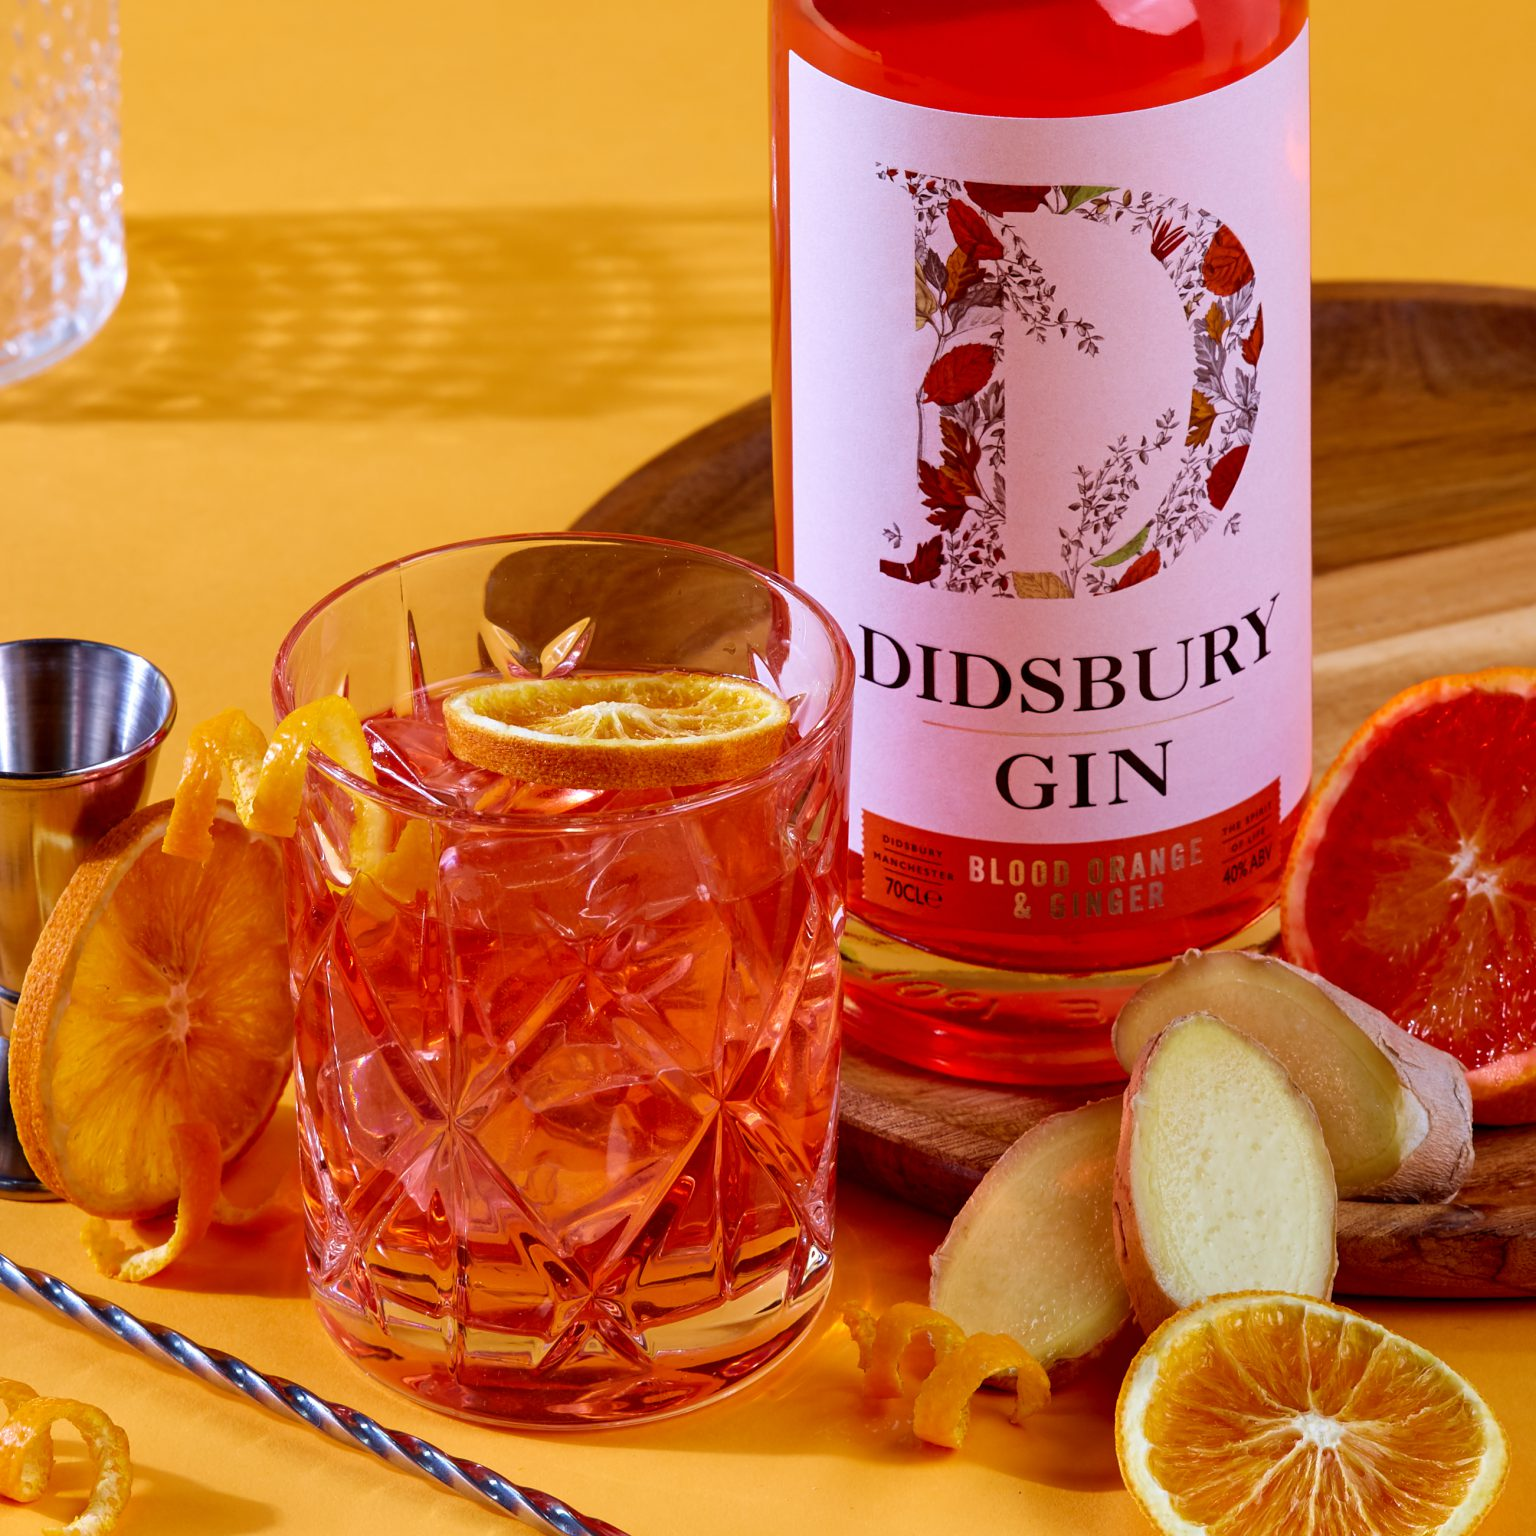 Didsbury Gin won't ruin Mother's Day